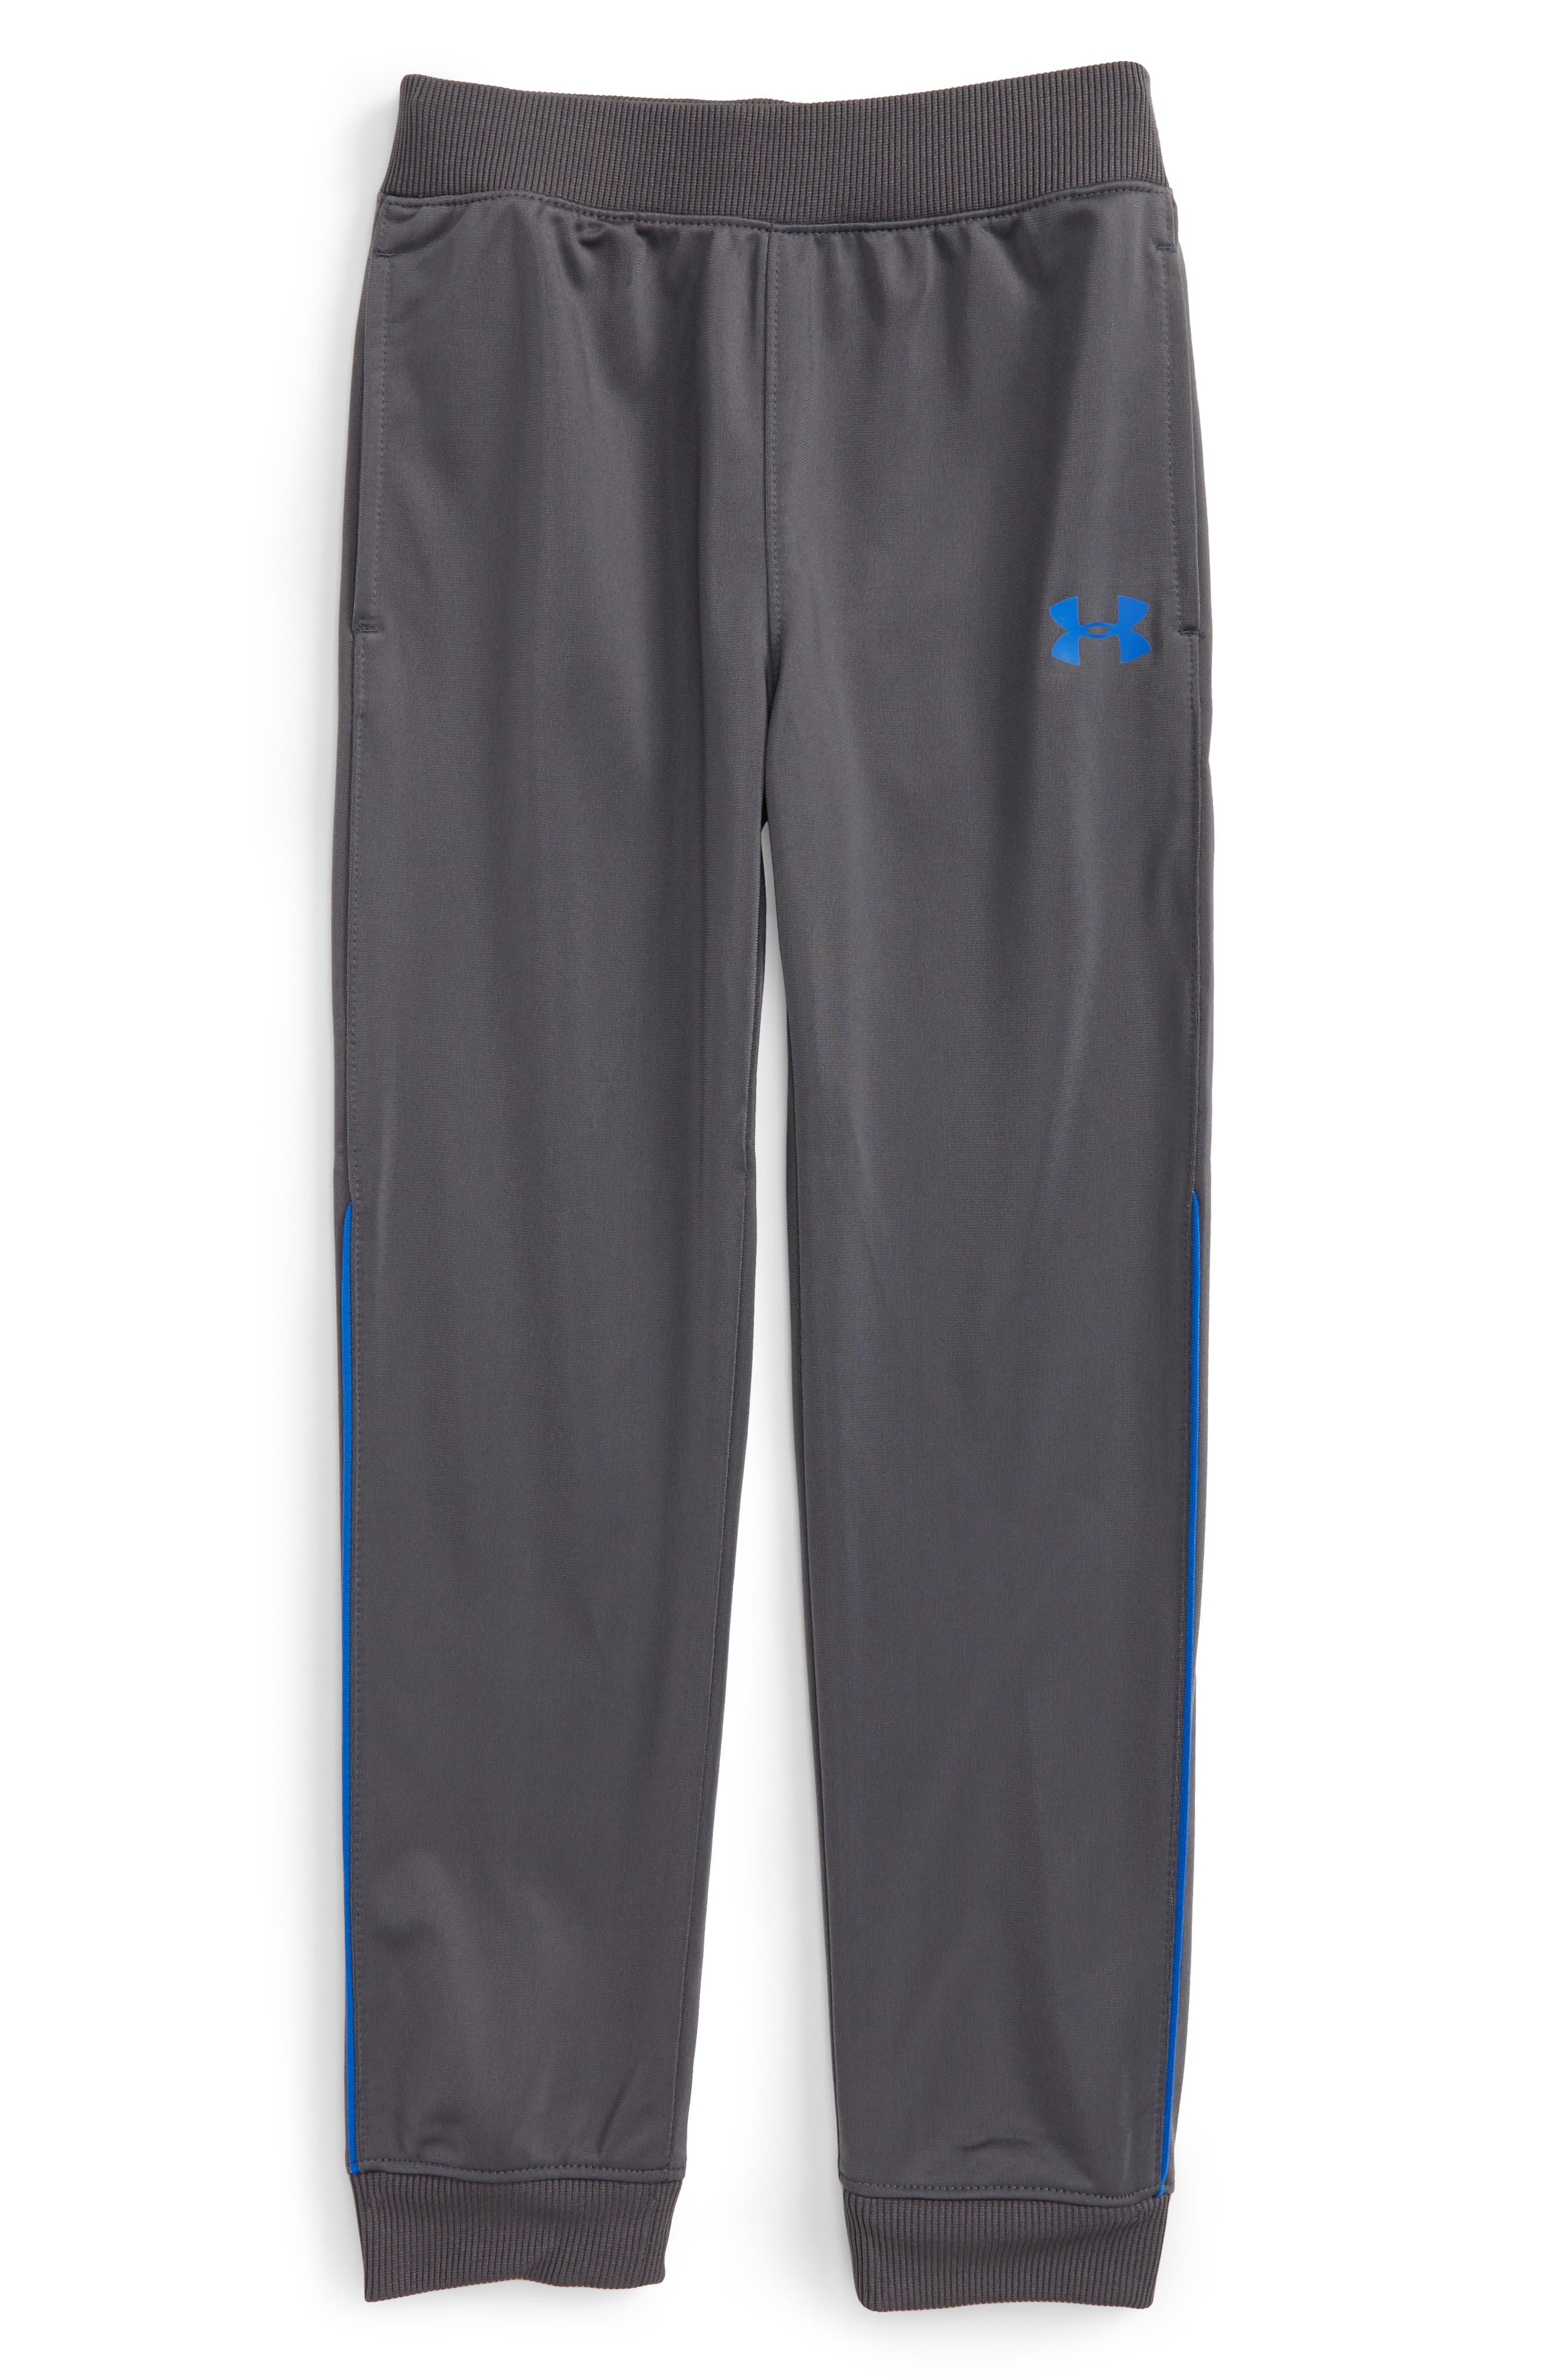 Under Armour Pennant Sweatpants (Toddler Boys & Little Boys)